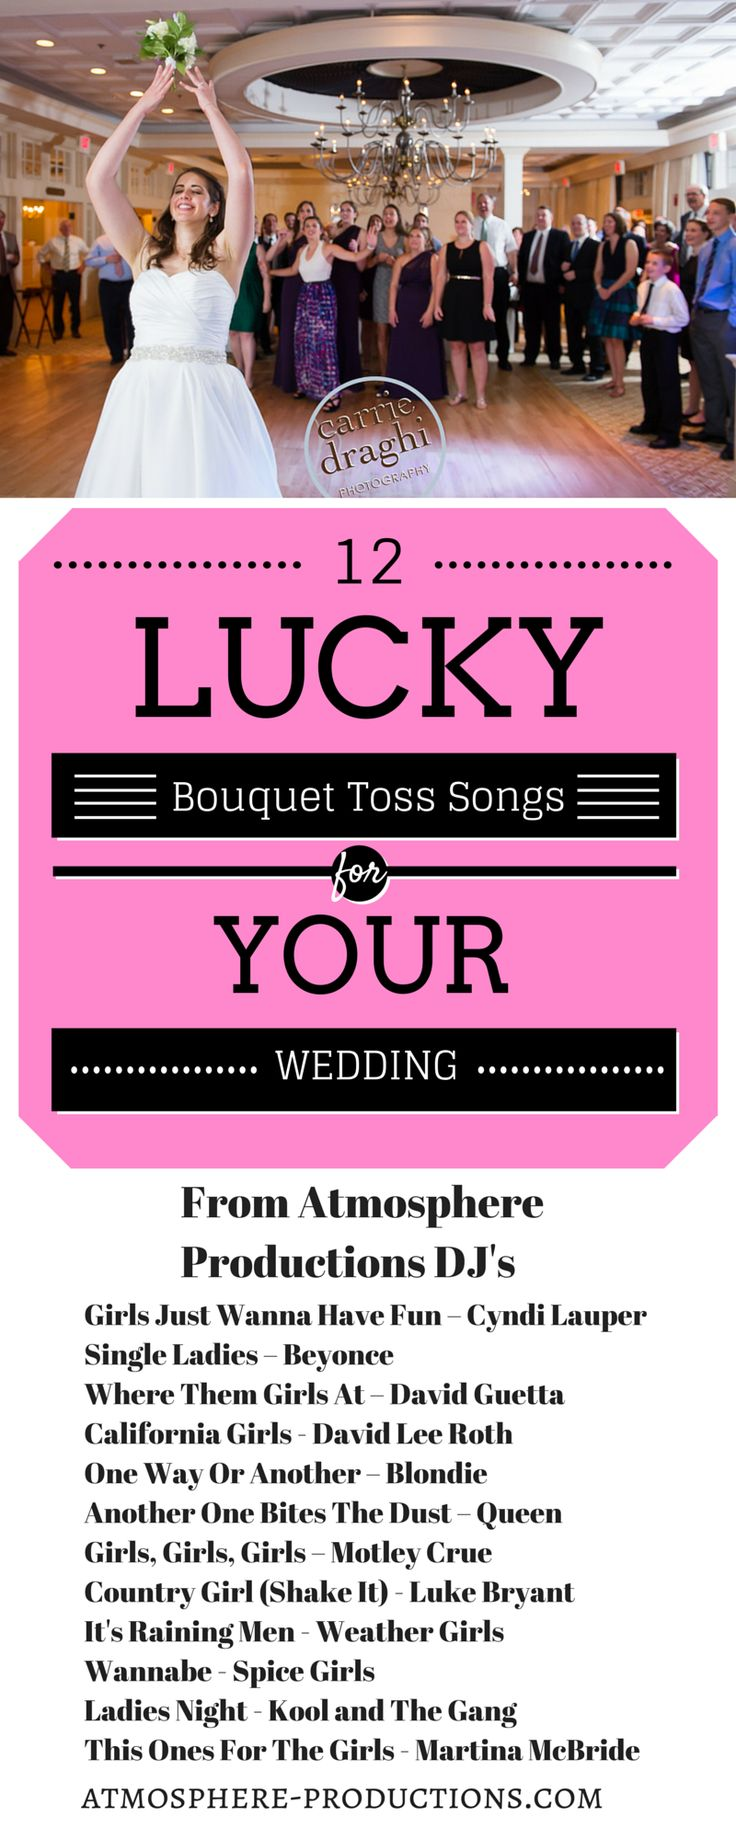 12 Lucky Bouquet Toss Songs For Your Wedding